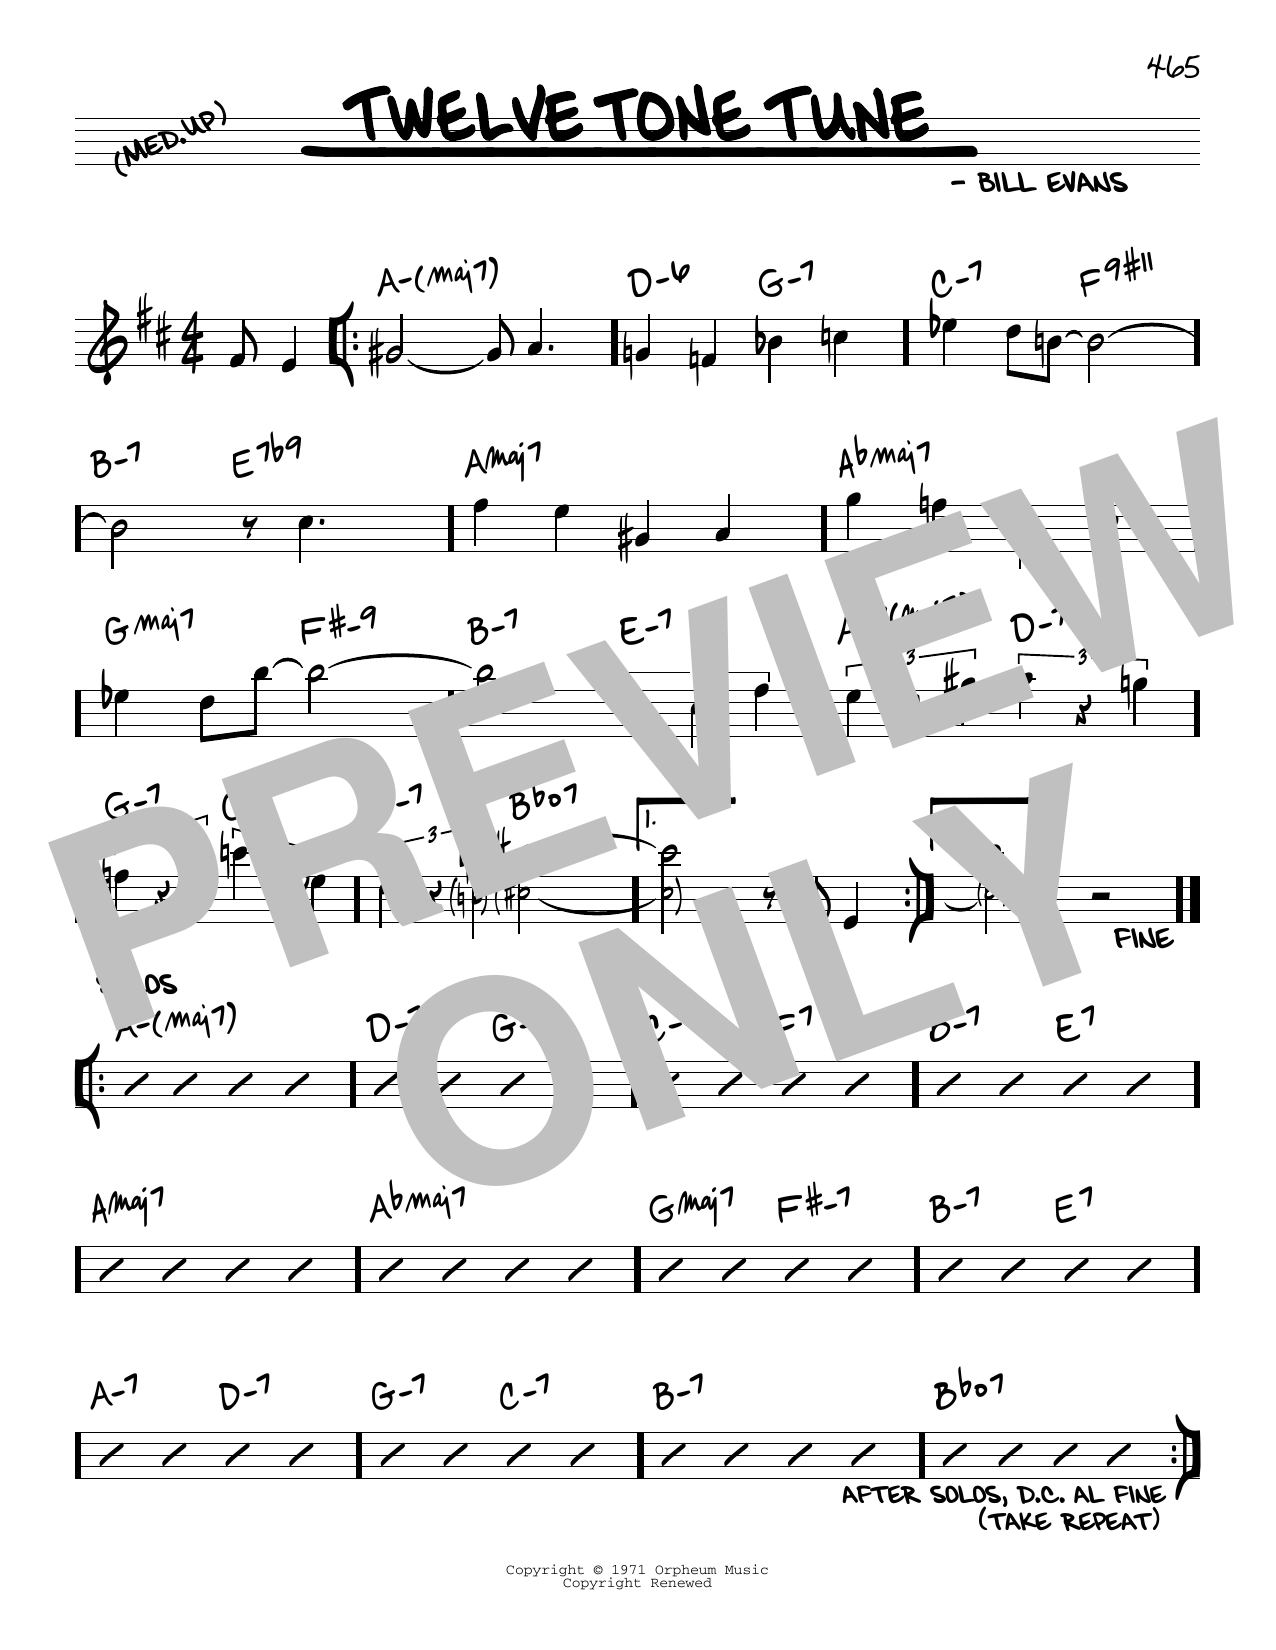 Bill Evans Twelve Tone Tune sheet music notes and chords. Download Printable PDF.